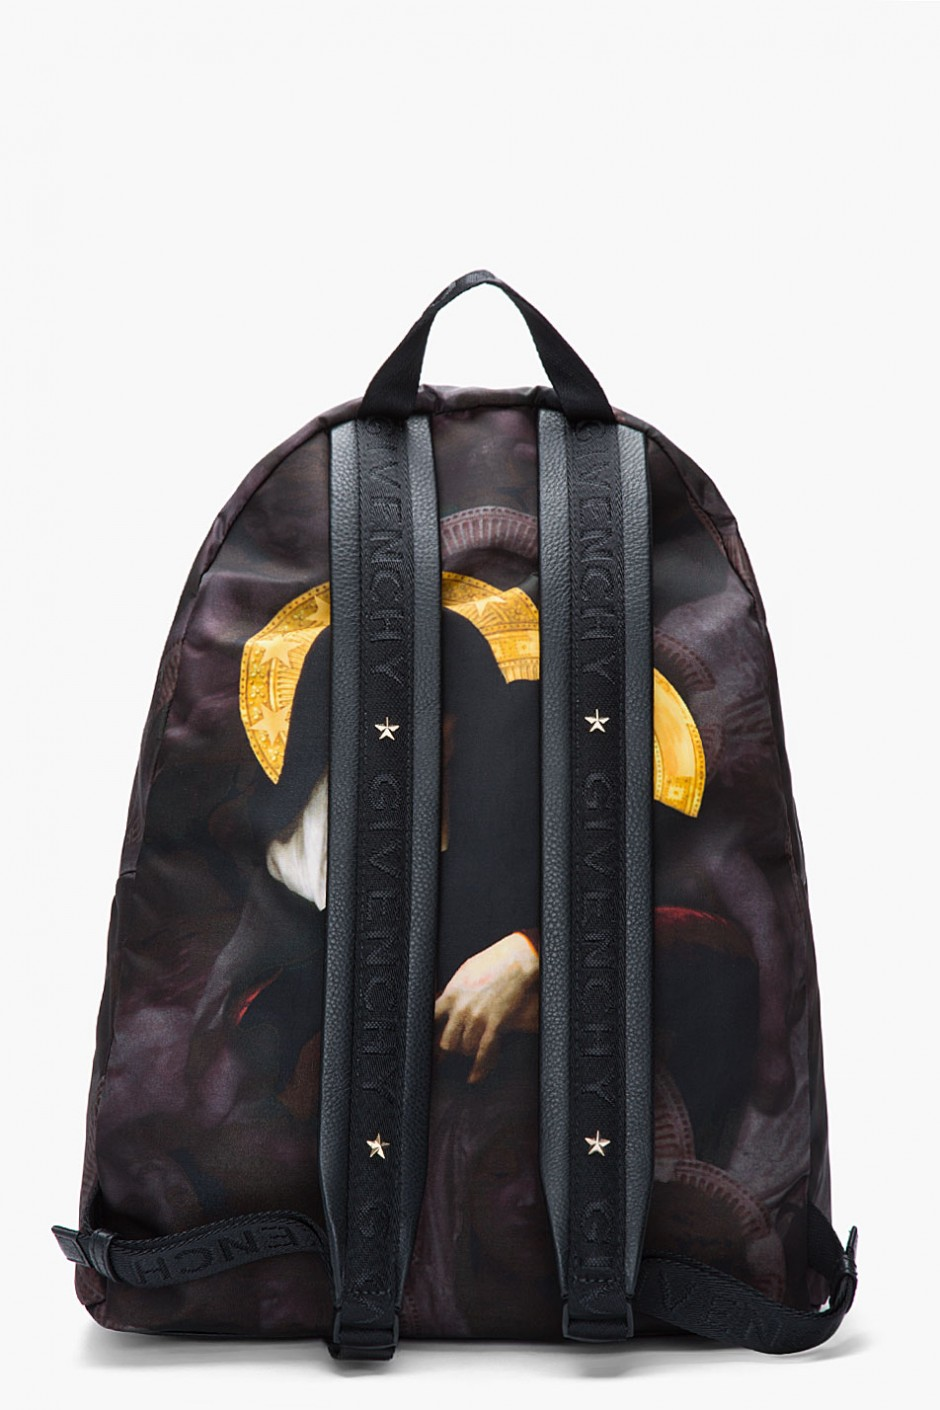 Givenchy Madonna Backpack 2